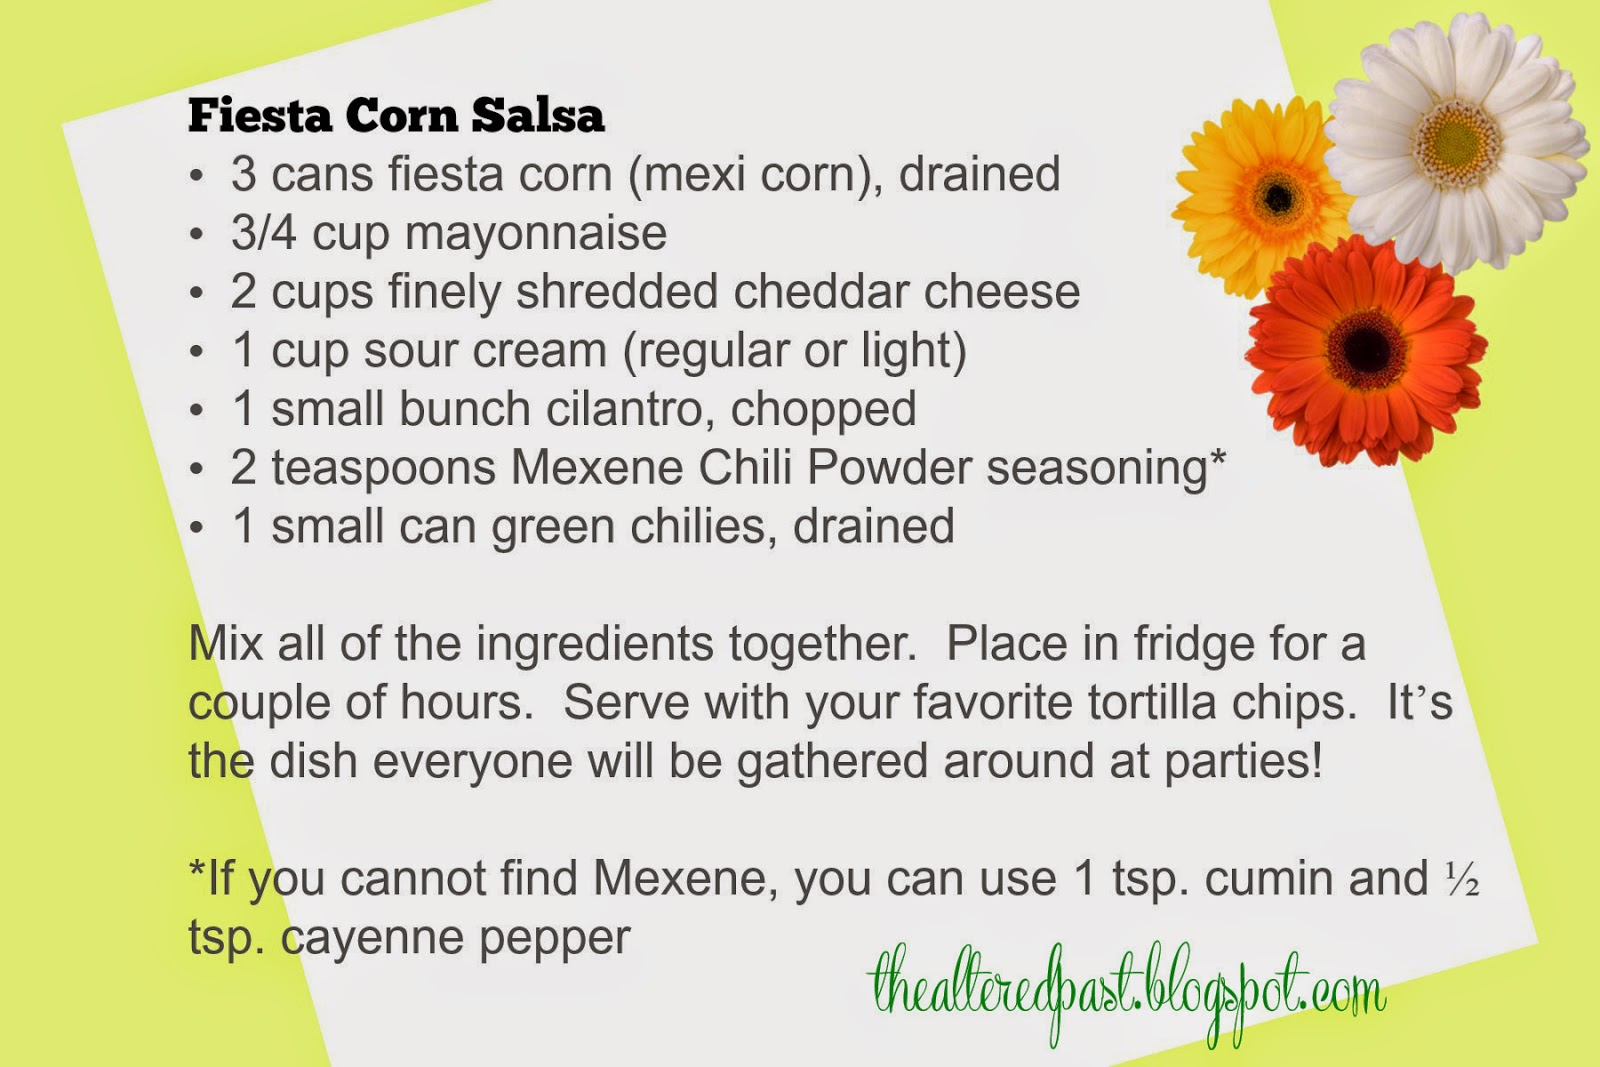 fiesta corn salsa, super bowl party recipes, the altered past